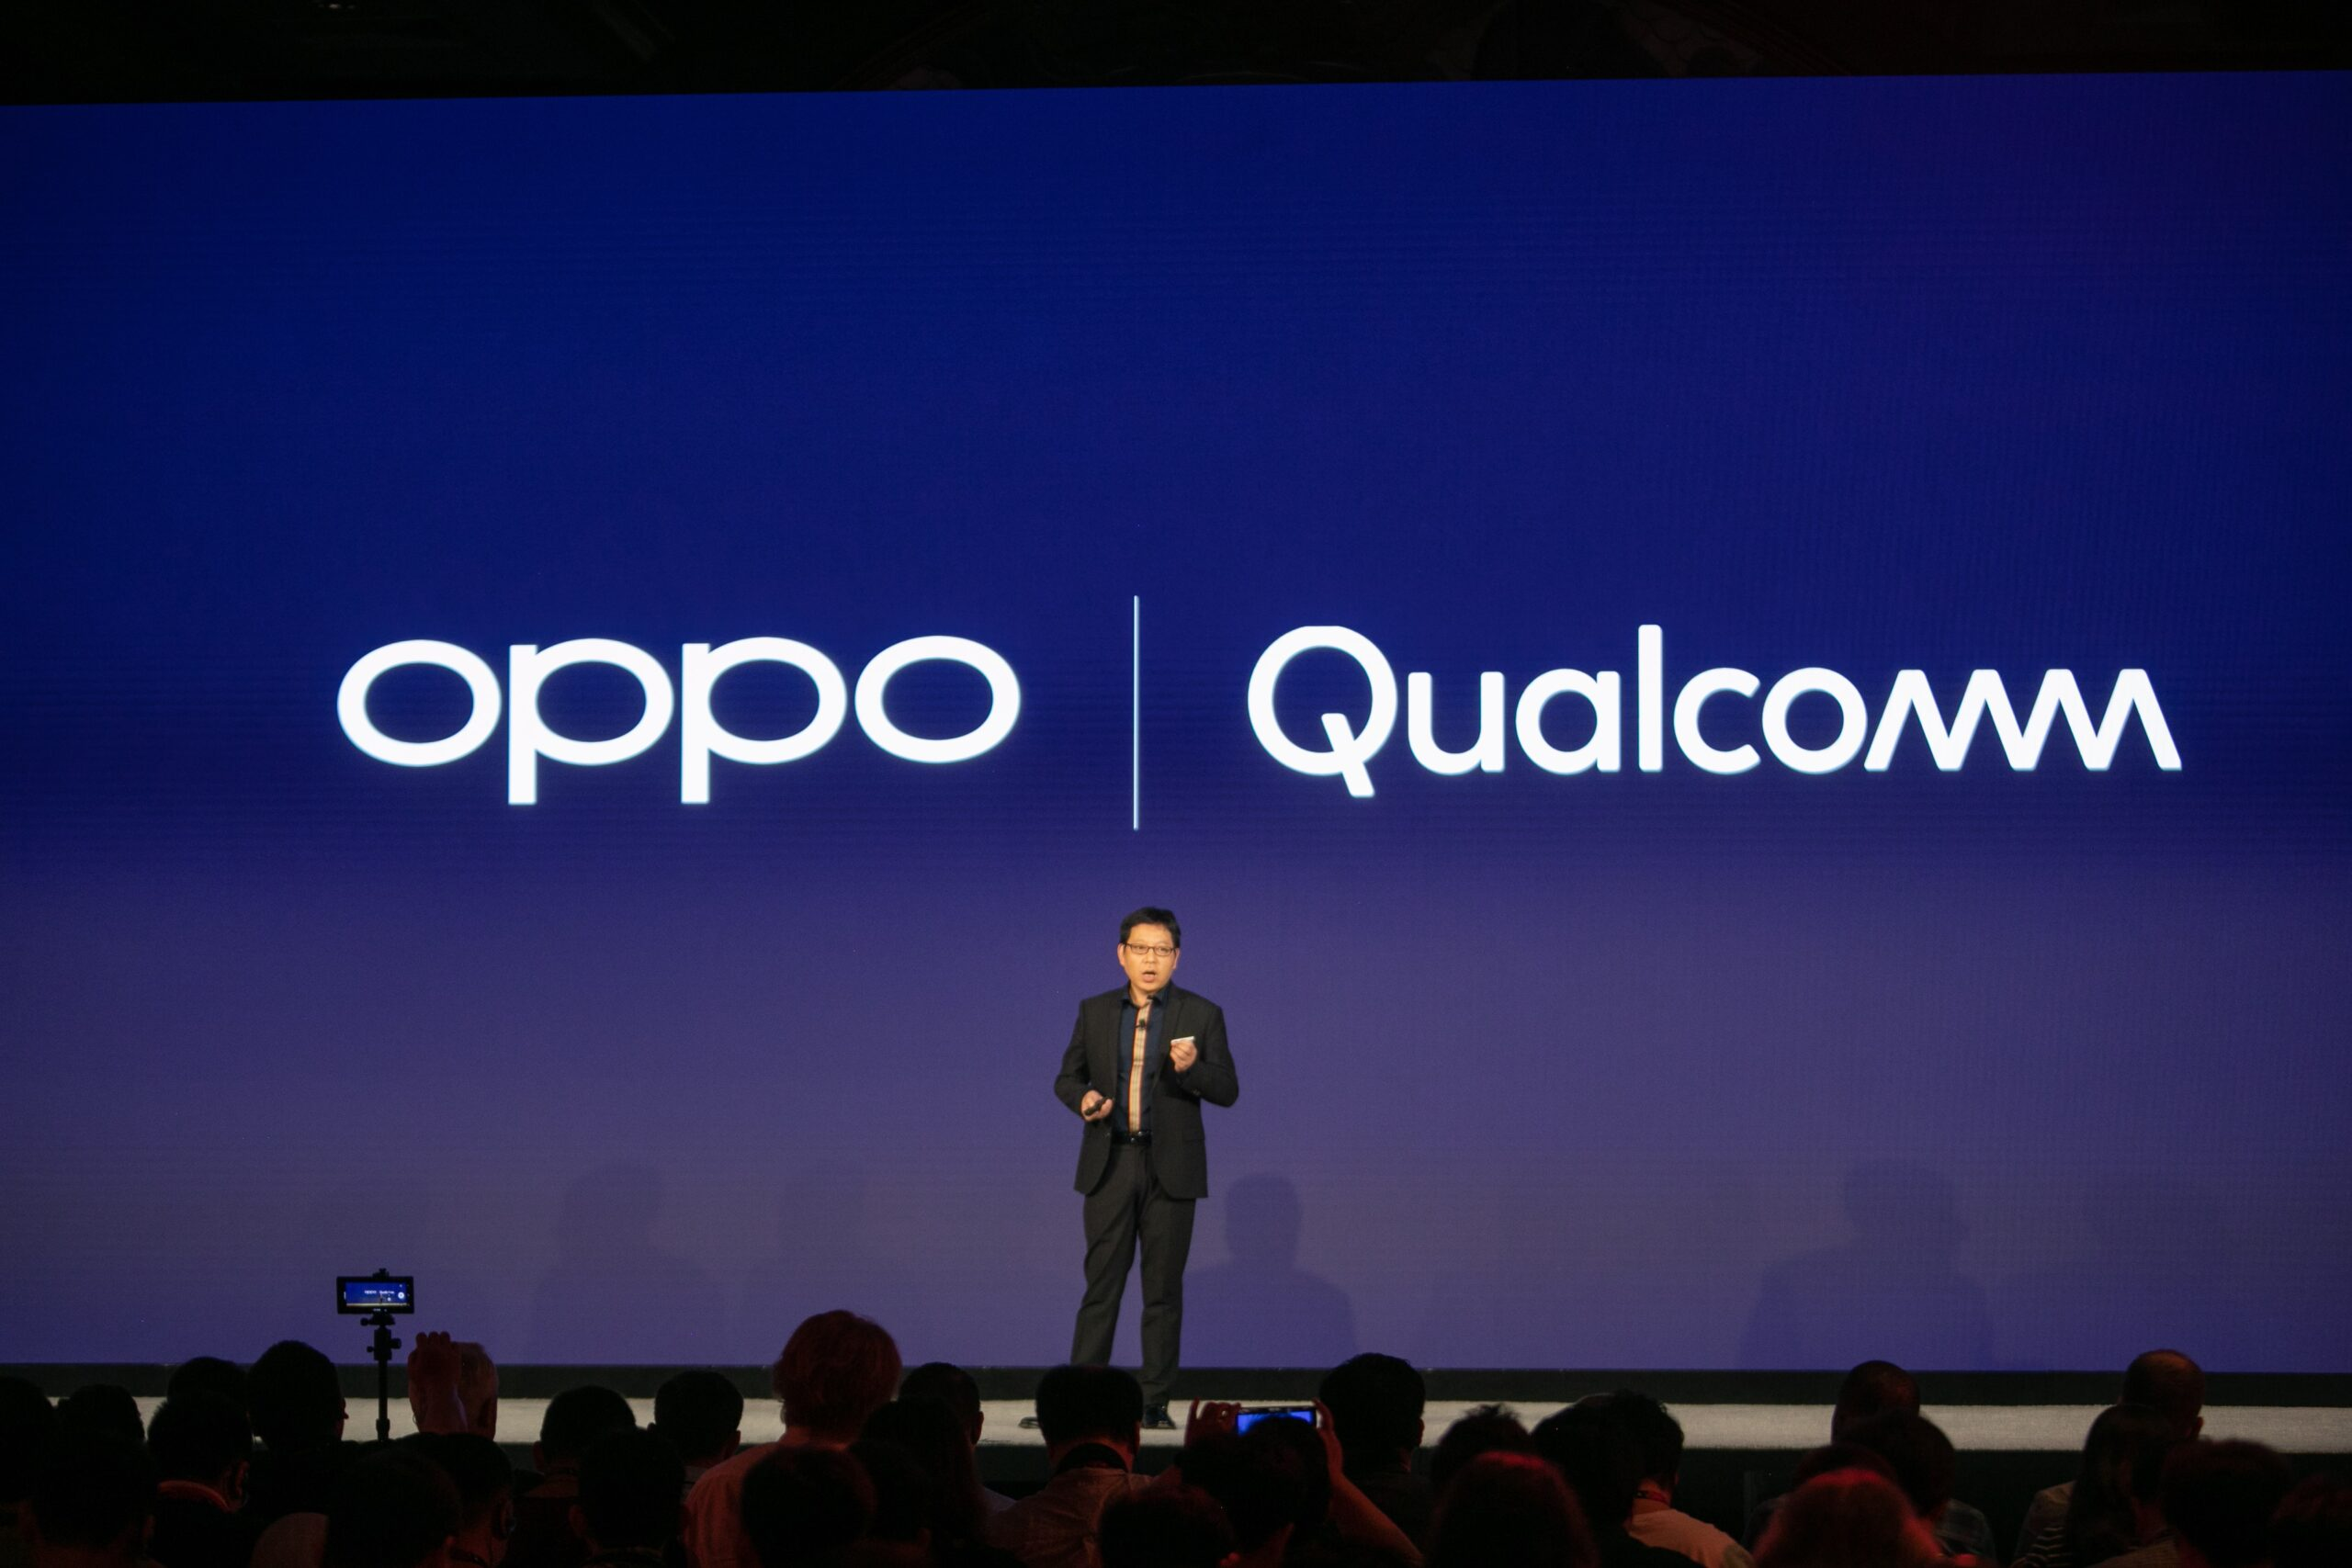 OPPO Confirms Reno3 Pro with Snapdragon 765G and 5G 5